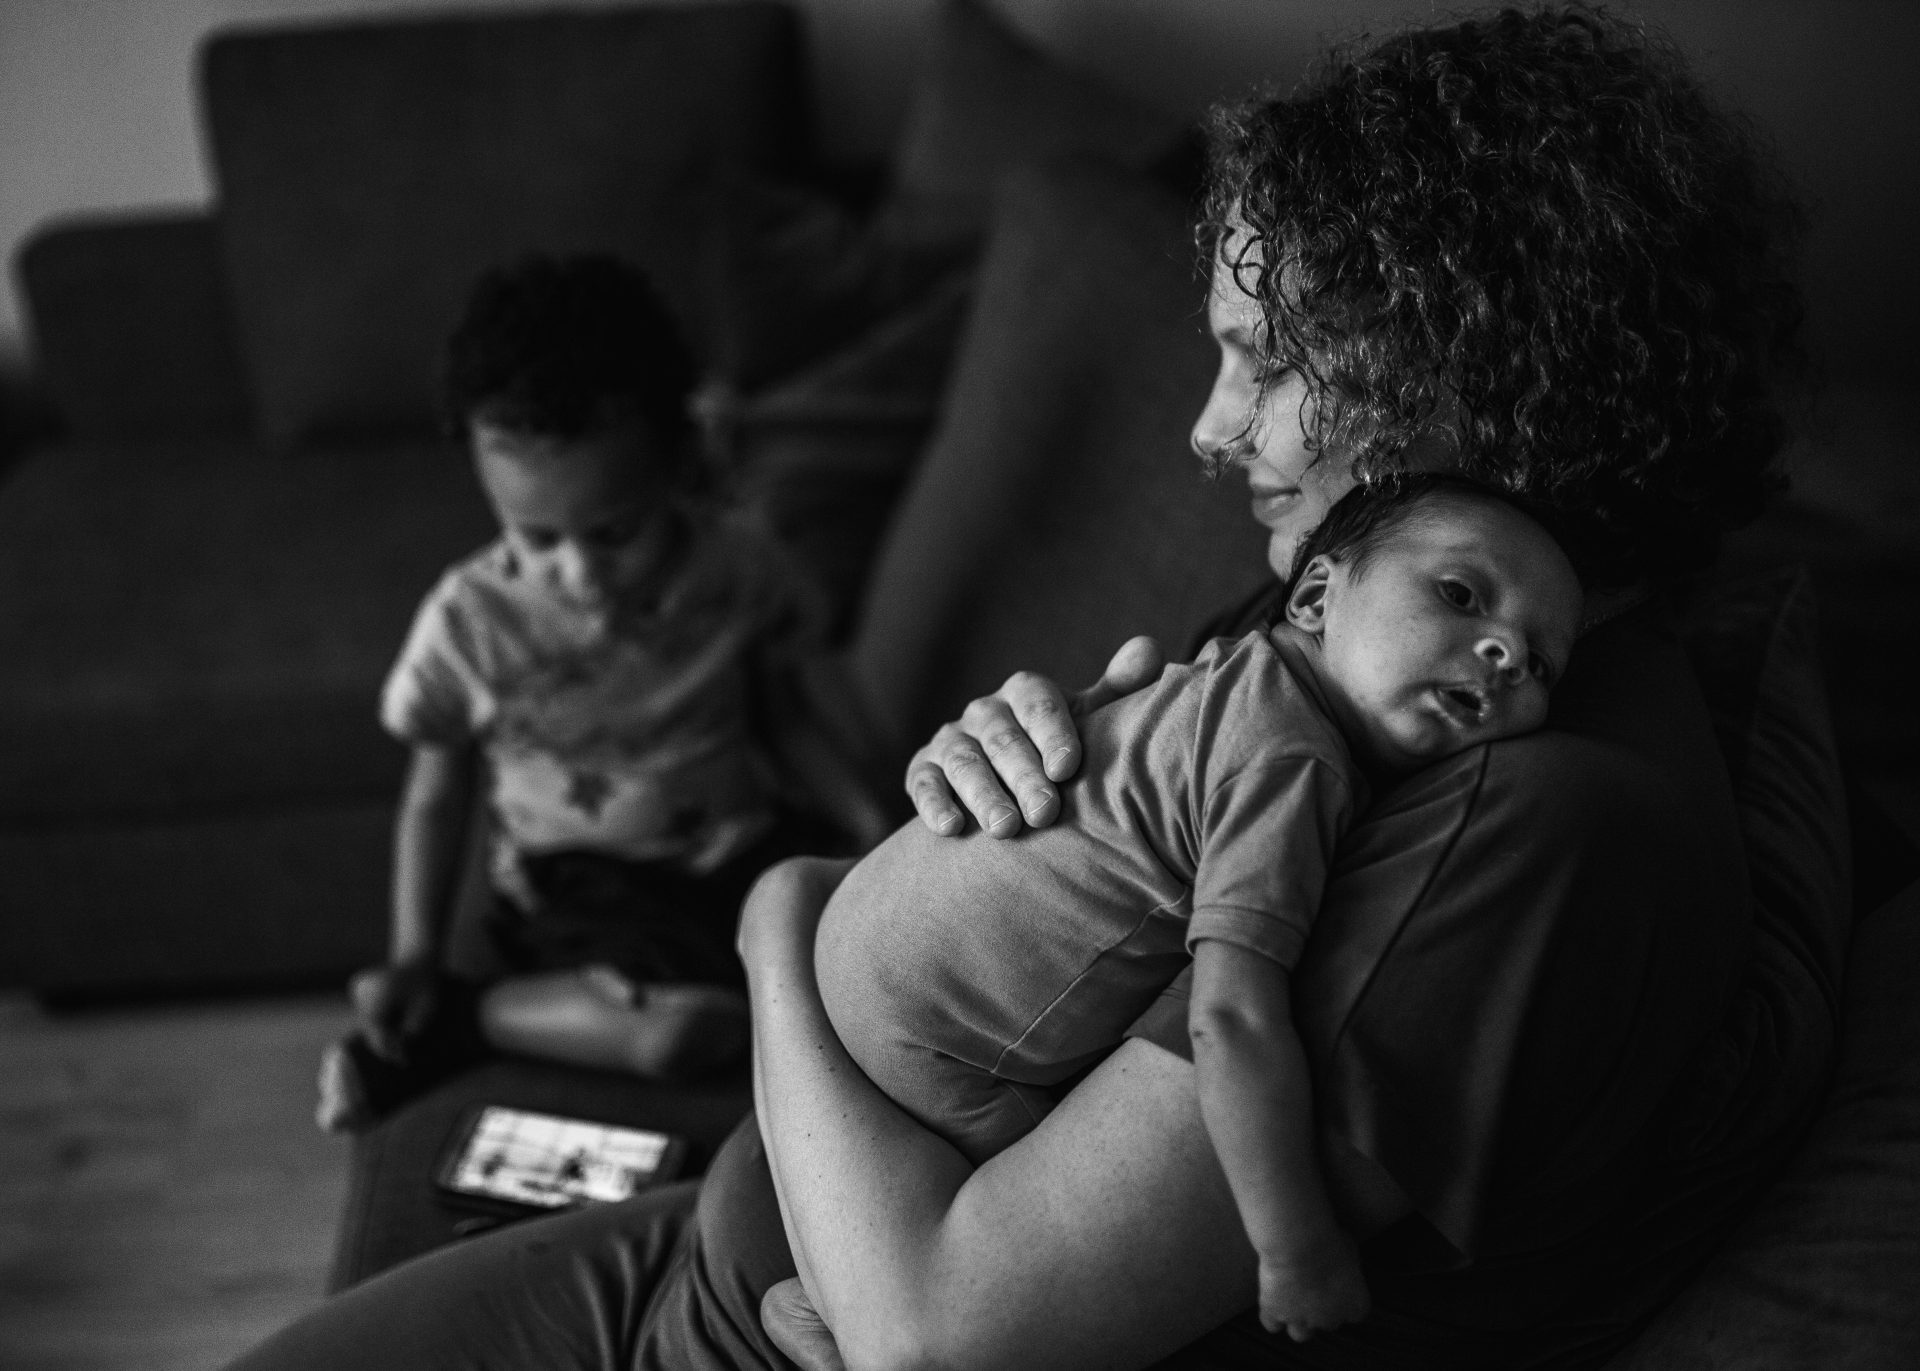 Black and white picture of mom holding her newborn in the livingroom with a calm smile, with her toddler next to her playing with a cellphone